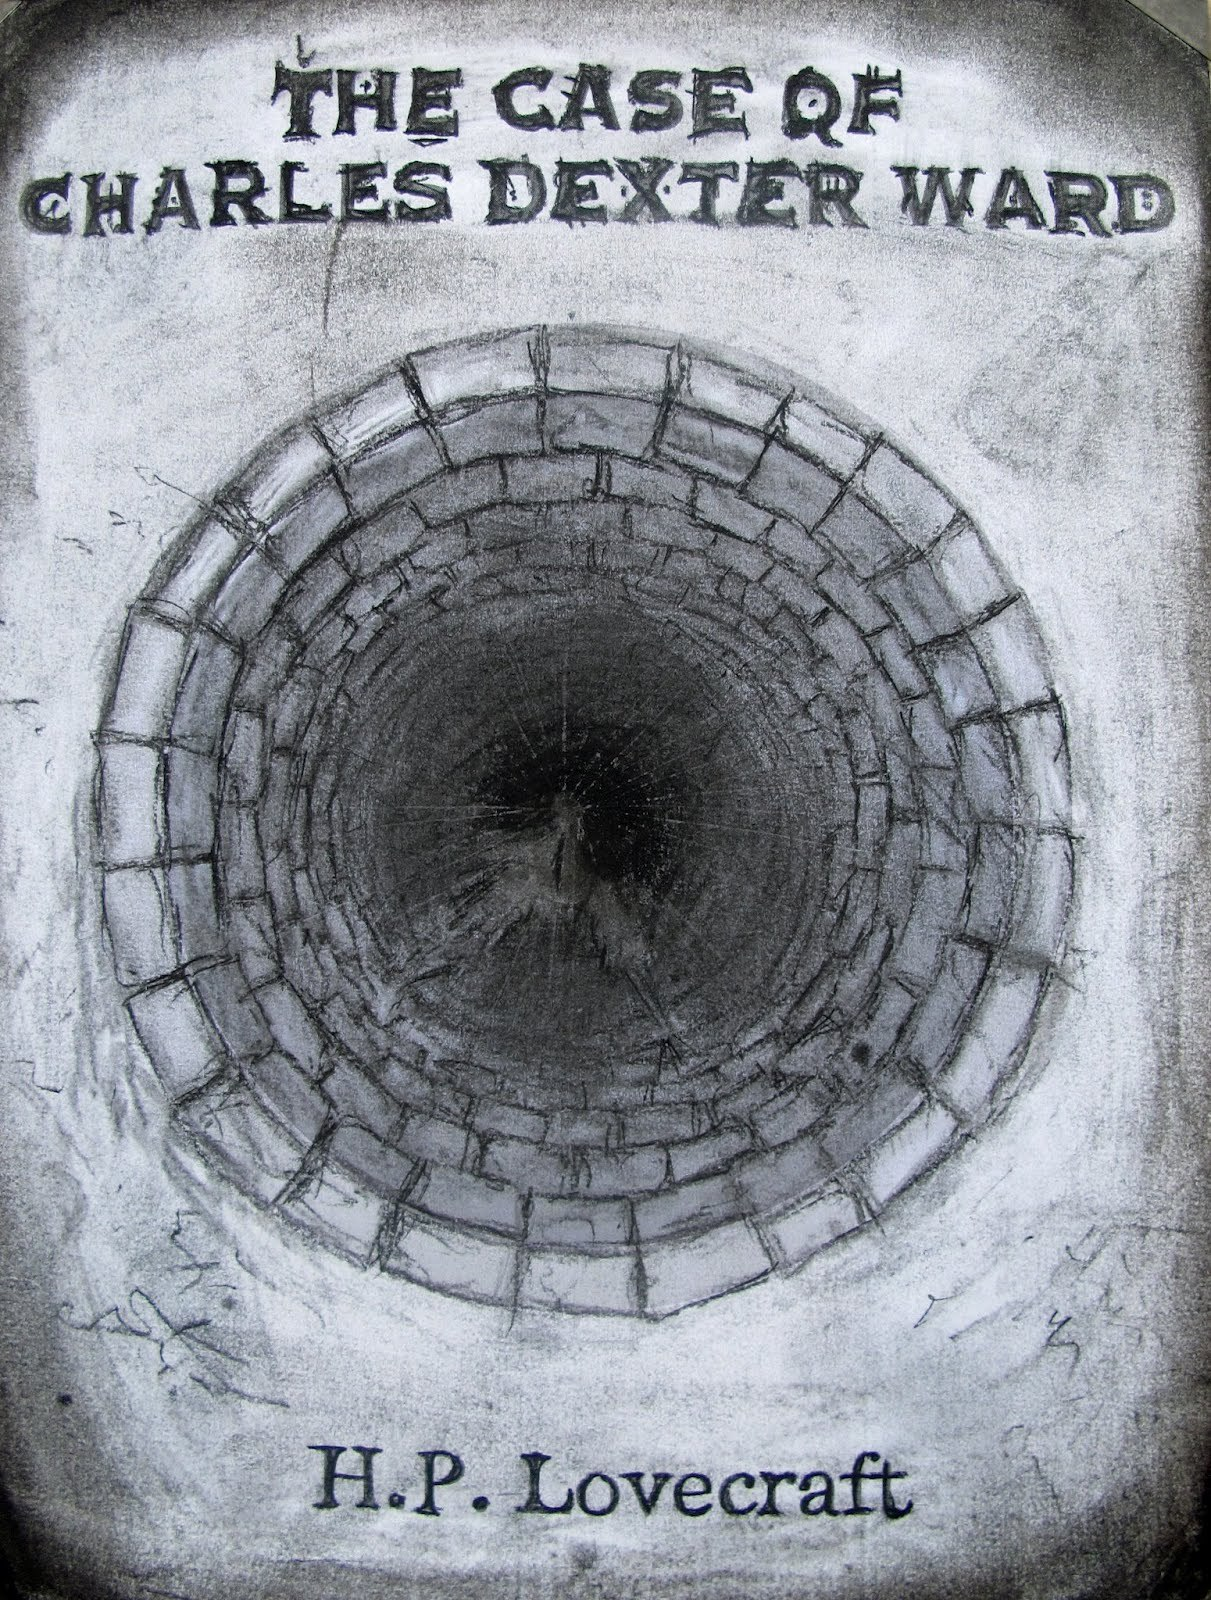 The Case of Charles Dexter Ward by H.P. Lovecraft. Cover by Mykul Craughwell.